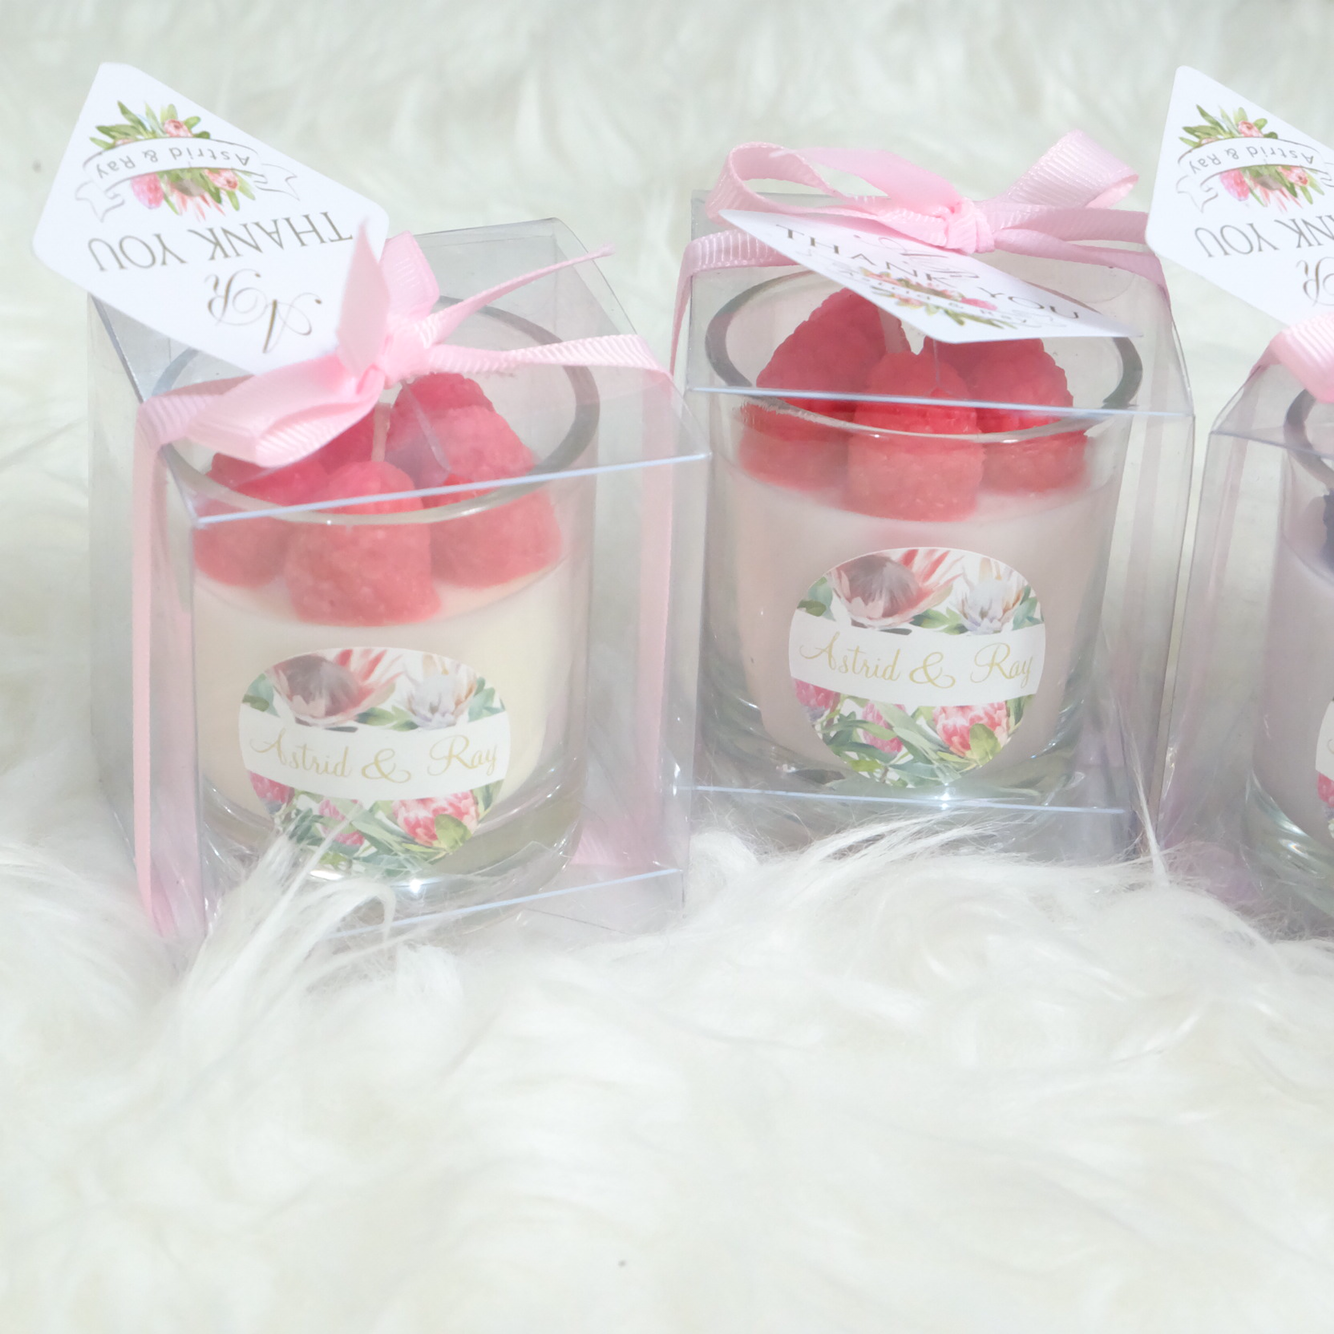 Scent and Light | Wedding Favors & Gifts in Jakarta | Bridestory.com